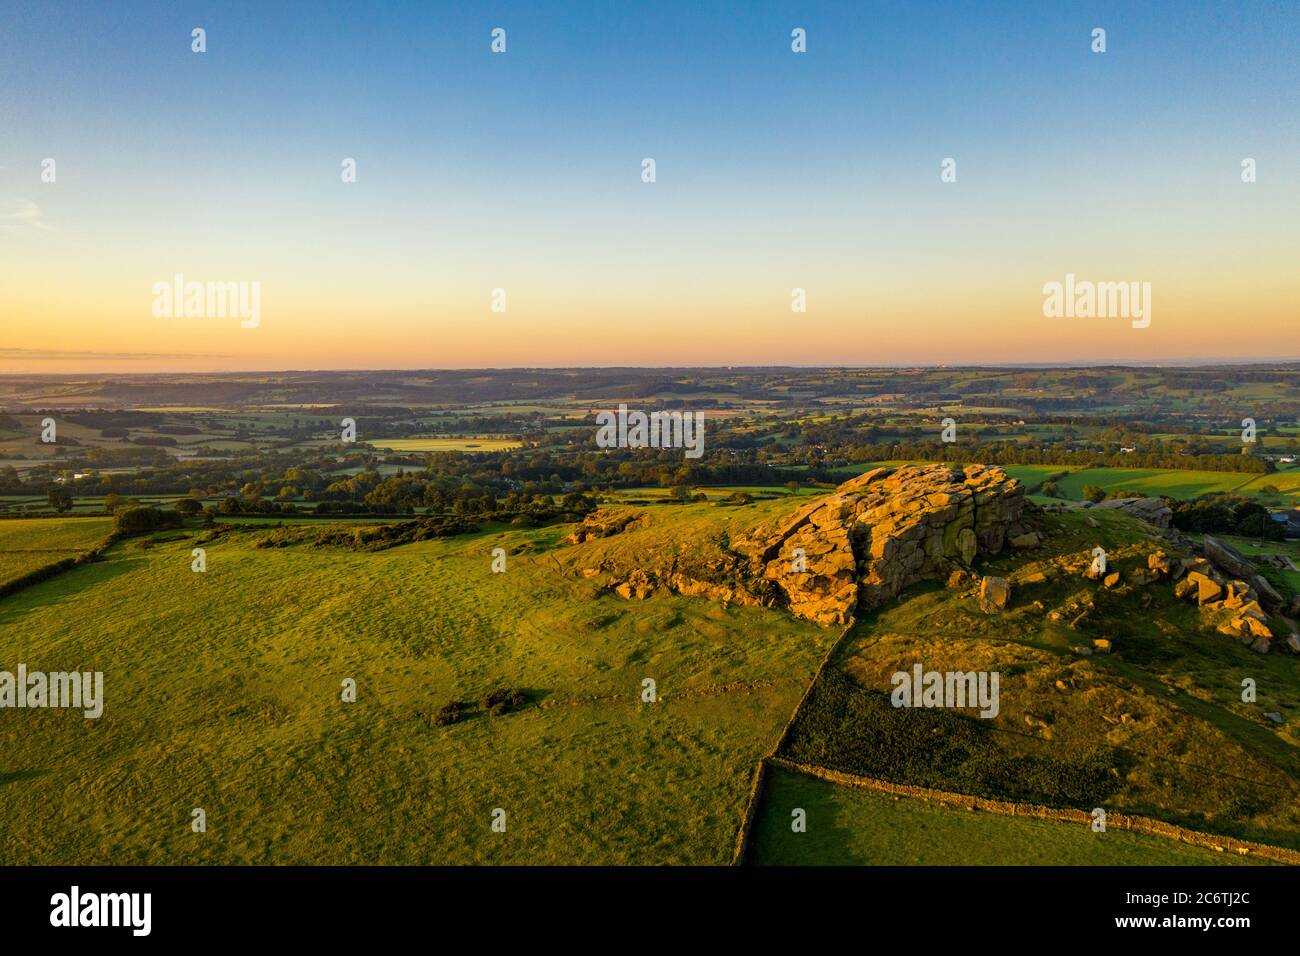 Almscliffe Crag, or Almscliff Crag is a Millstone Grit outcrop at the top of a small hill near the village of North Rigton,near Leeds and Harrogate Stock Photo